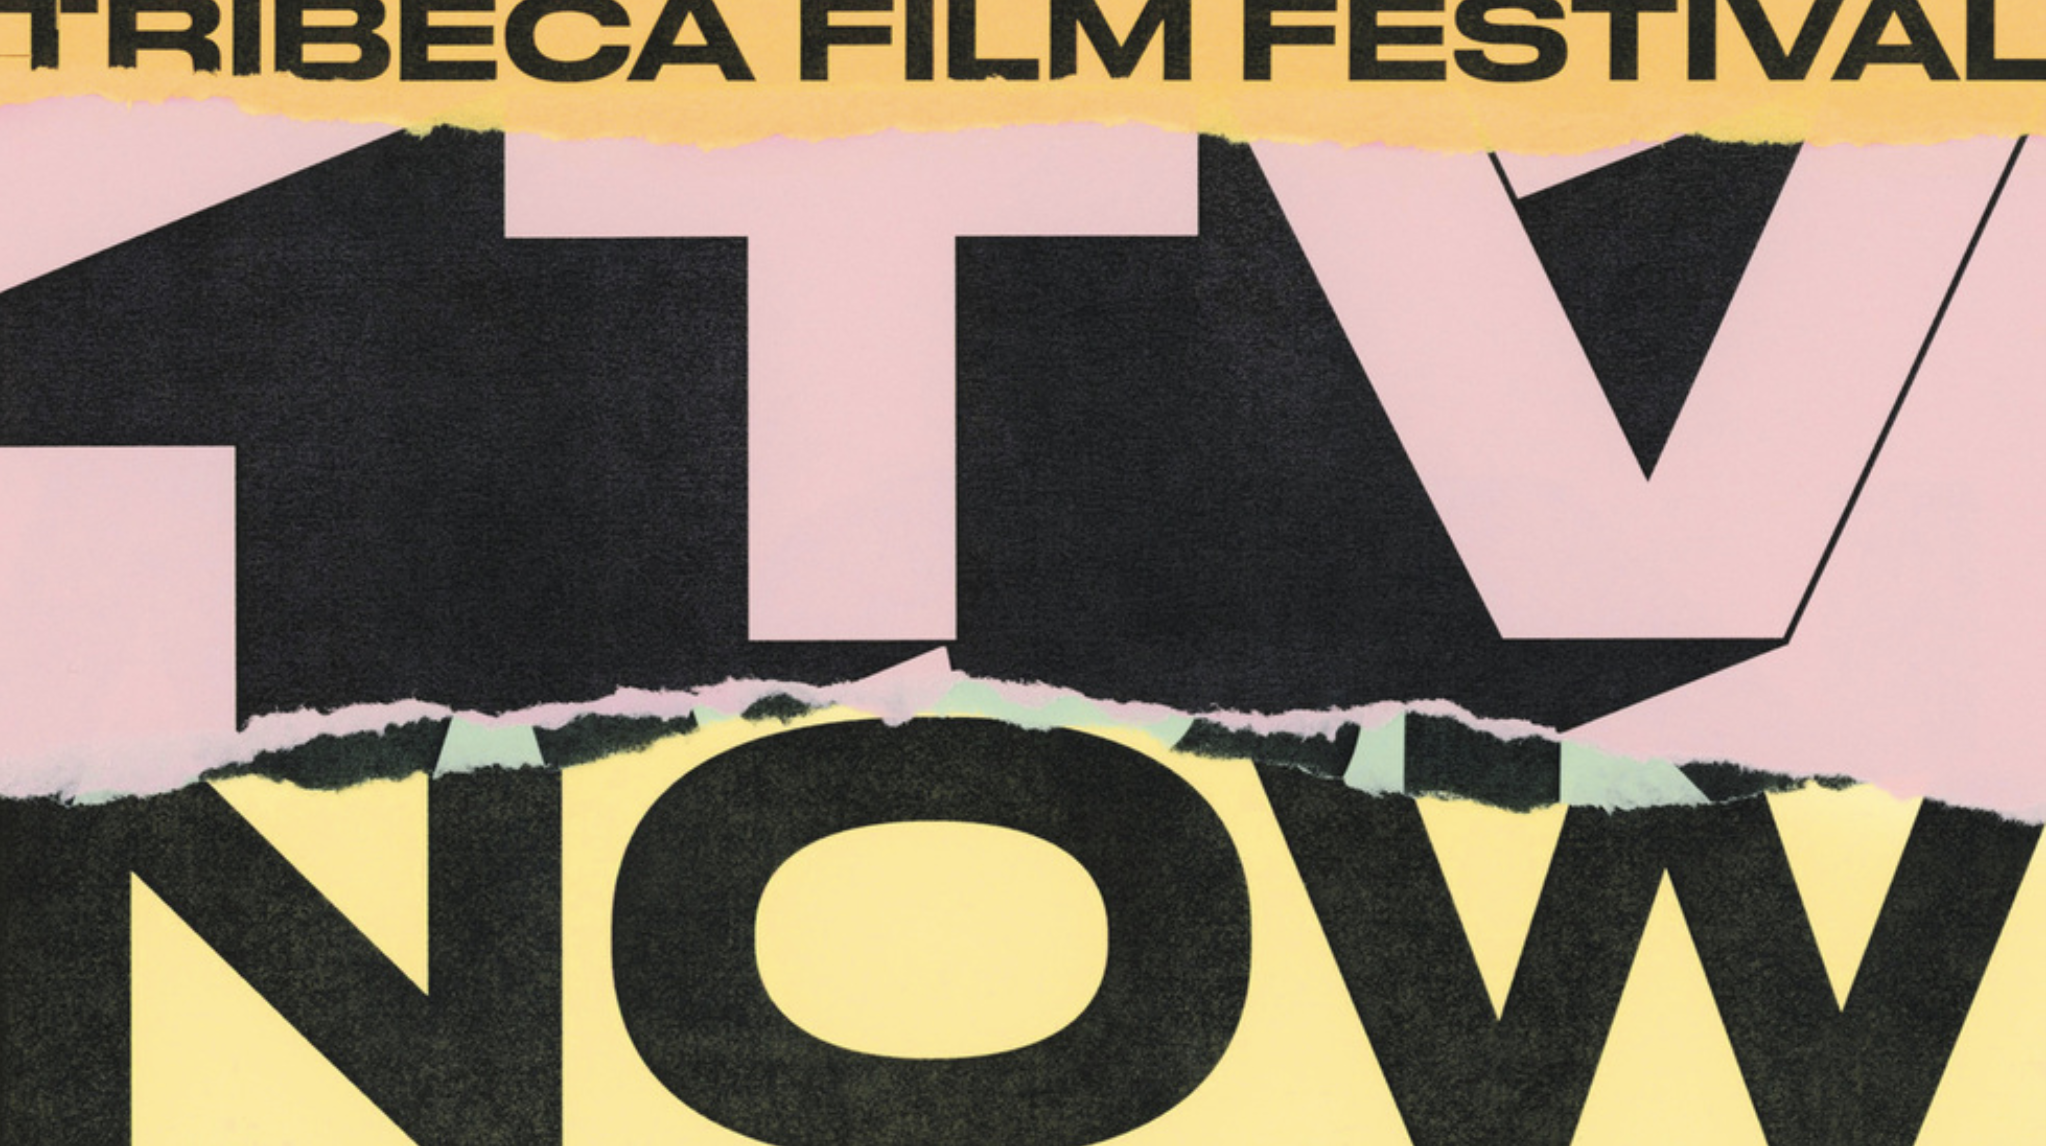 #HOMETHESERIES officially World Premiered at the 2018 Tribeca Film Festival as a part of the New Online Work Program.Only 1% of applicants were accepted.Here's what Tribeca had to say about the 2018 N.O.W. program: -